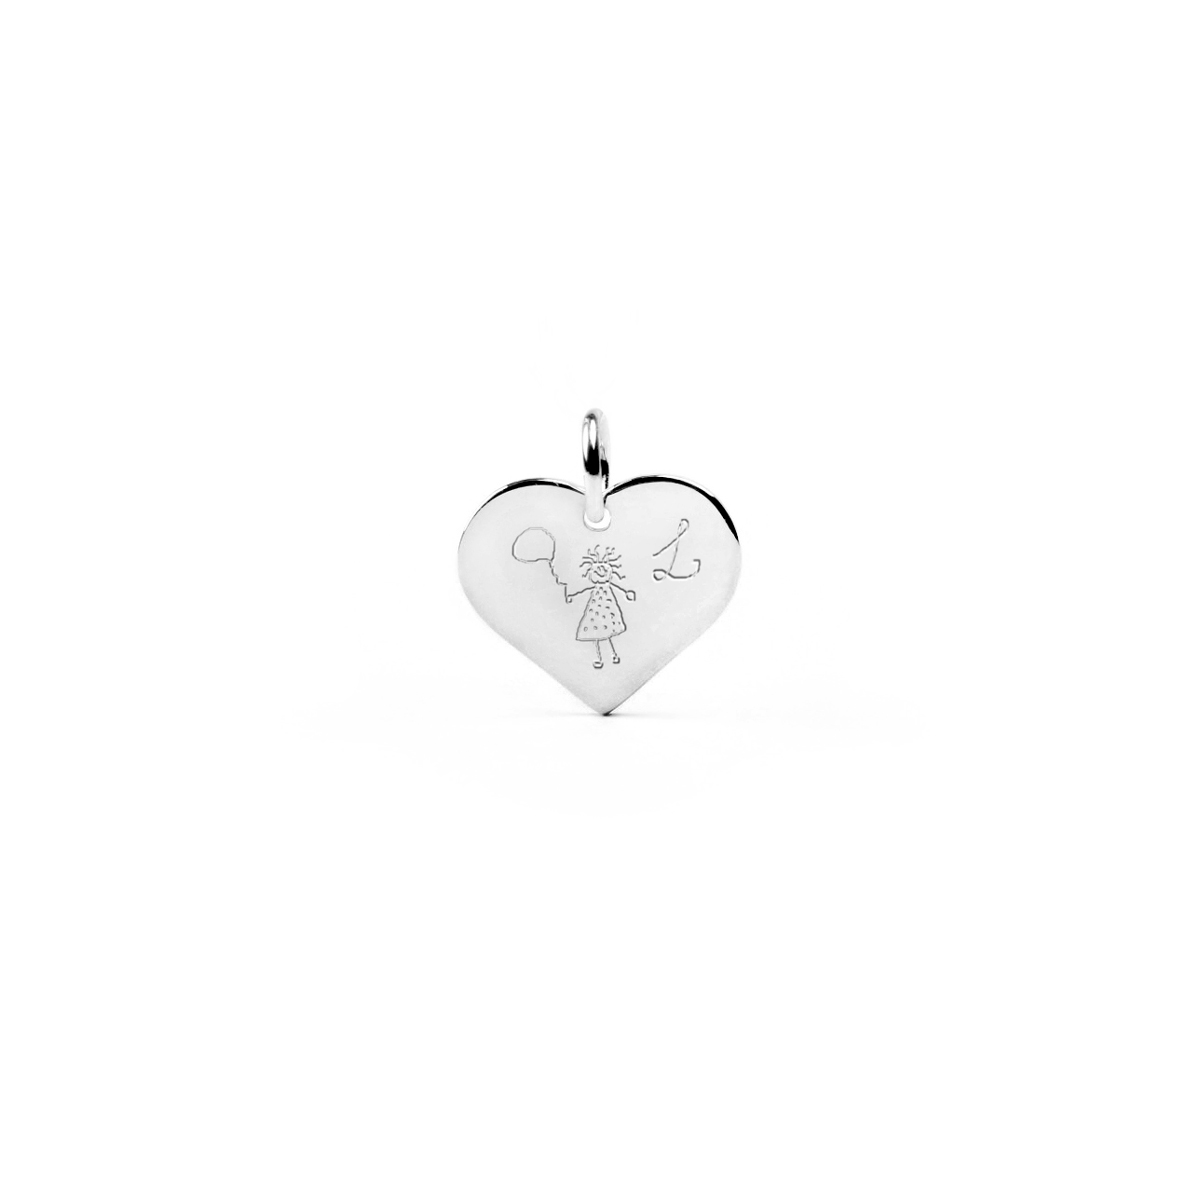 Heart-shape pendant 19 x 16 mm